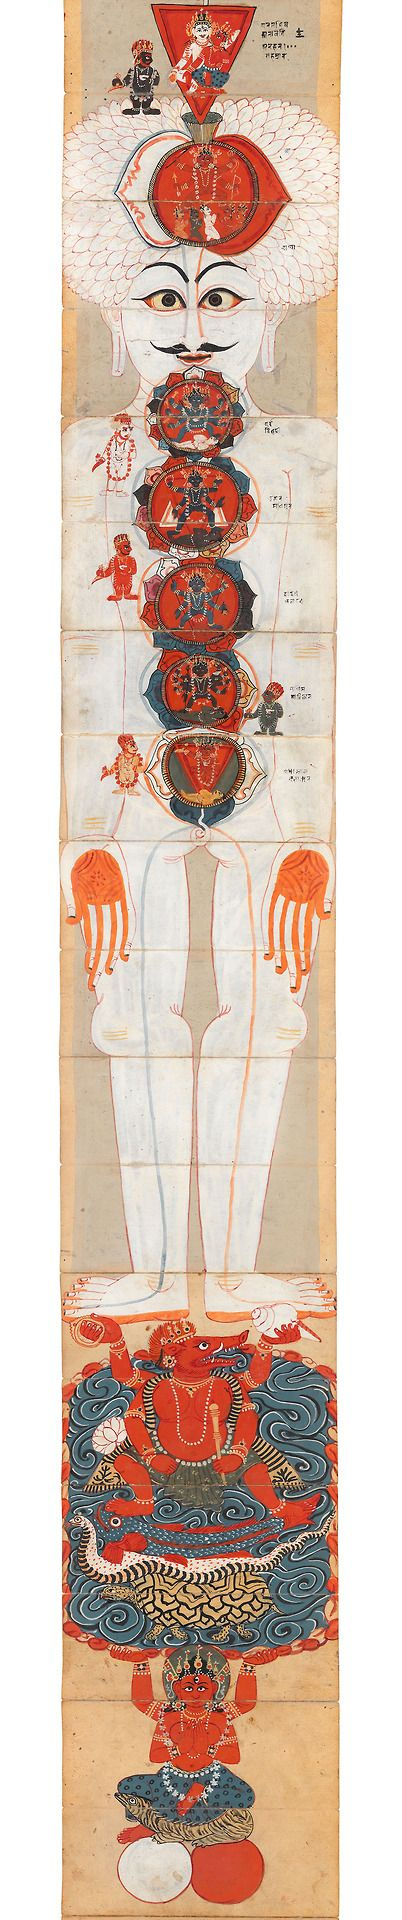 eyeburfi2:  The chakras of the subtle body, Nepal, 18th century. Source: Asianart.com